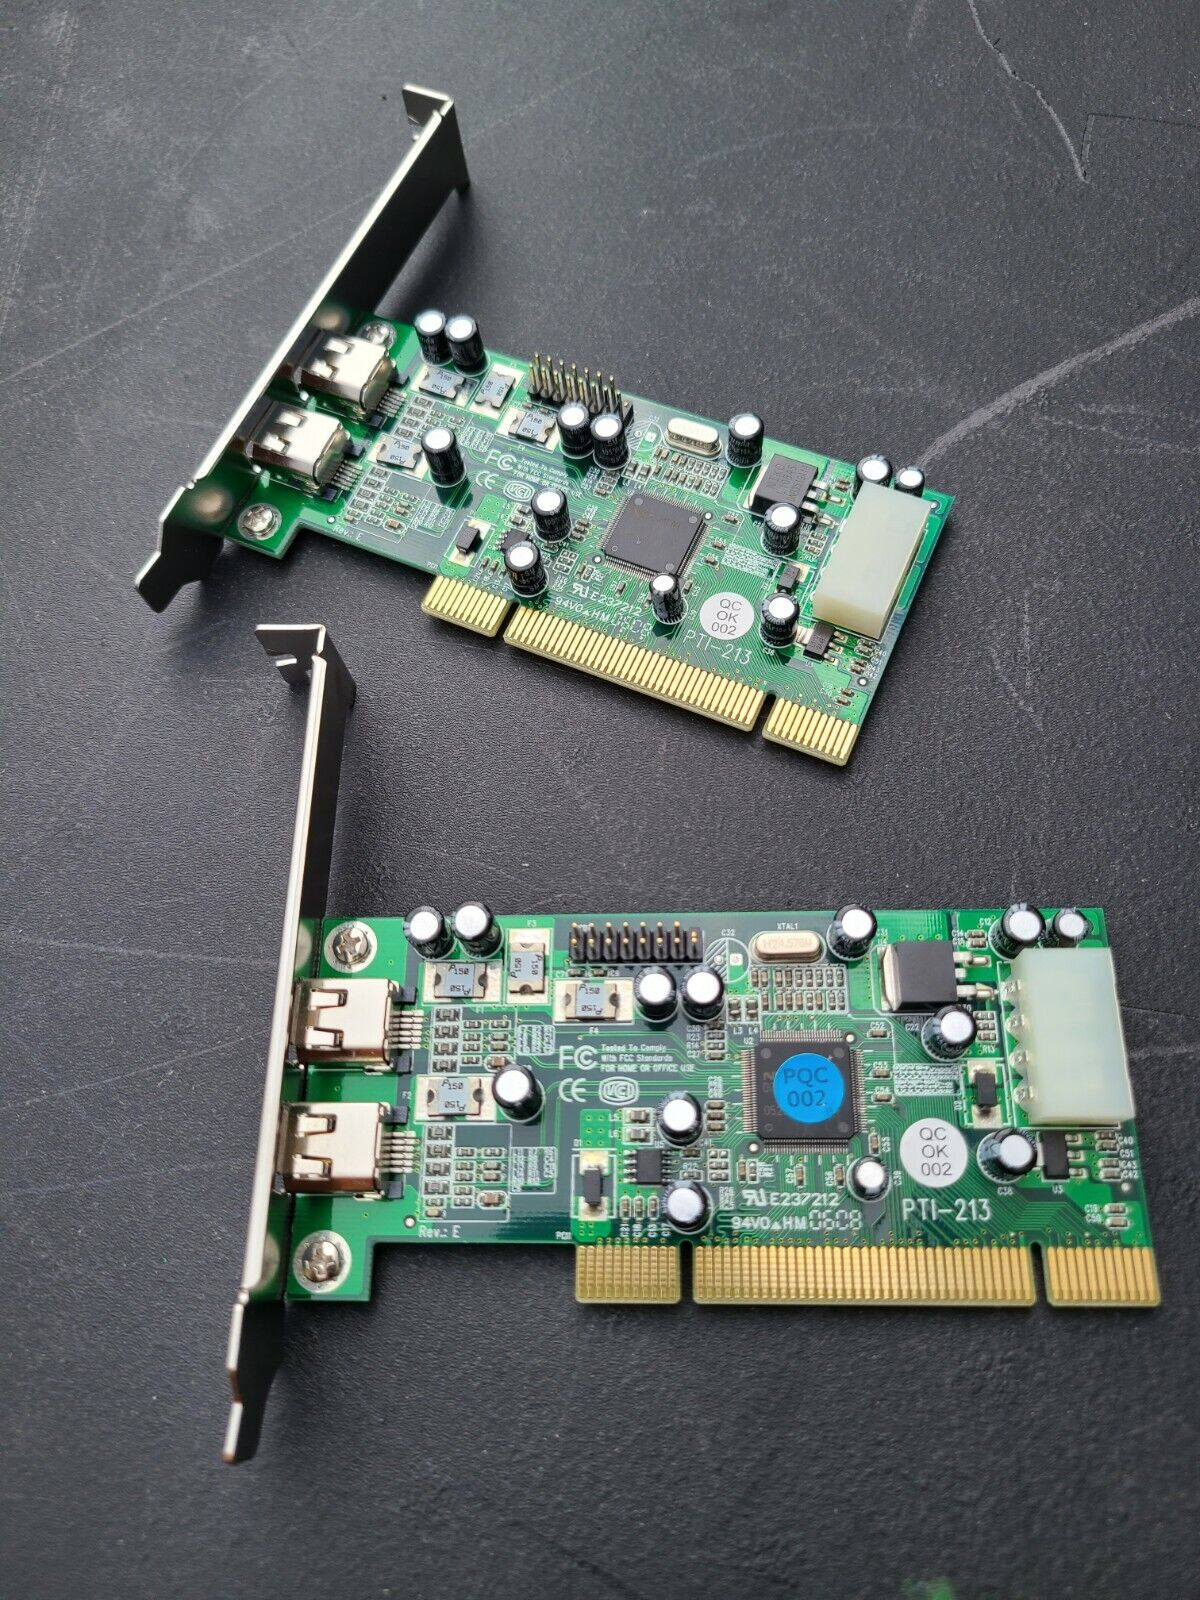 Lot of two PTI-213 Firewire Cards